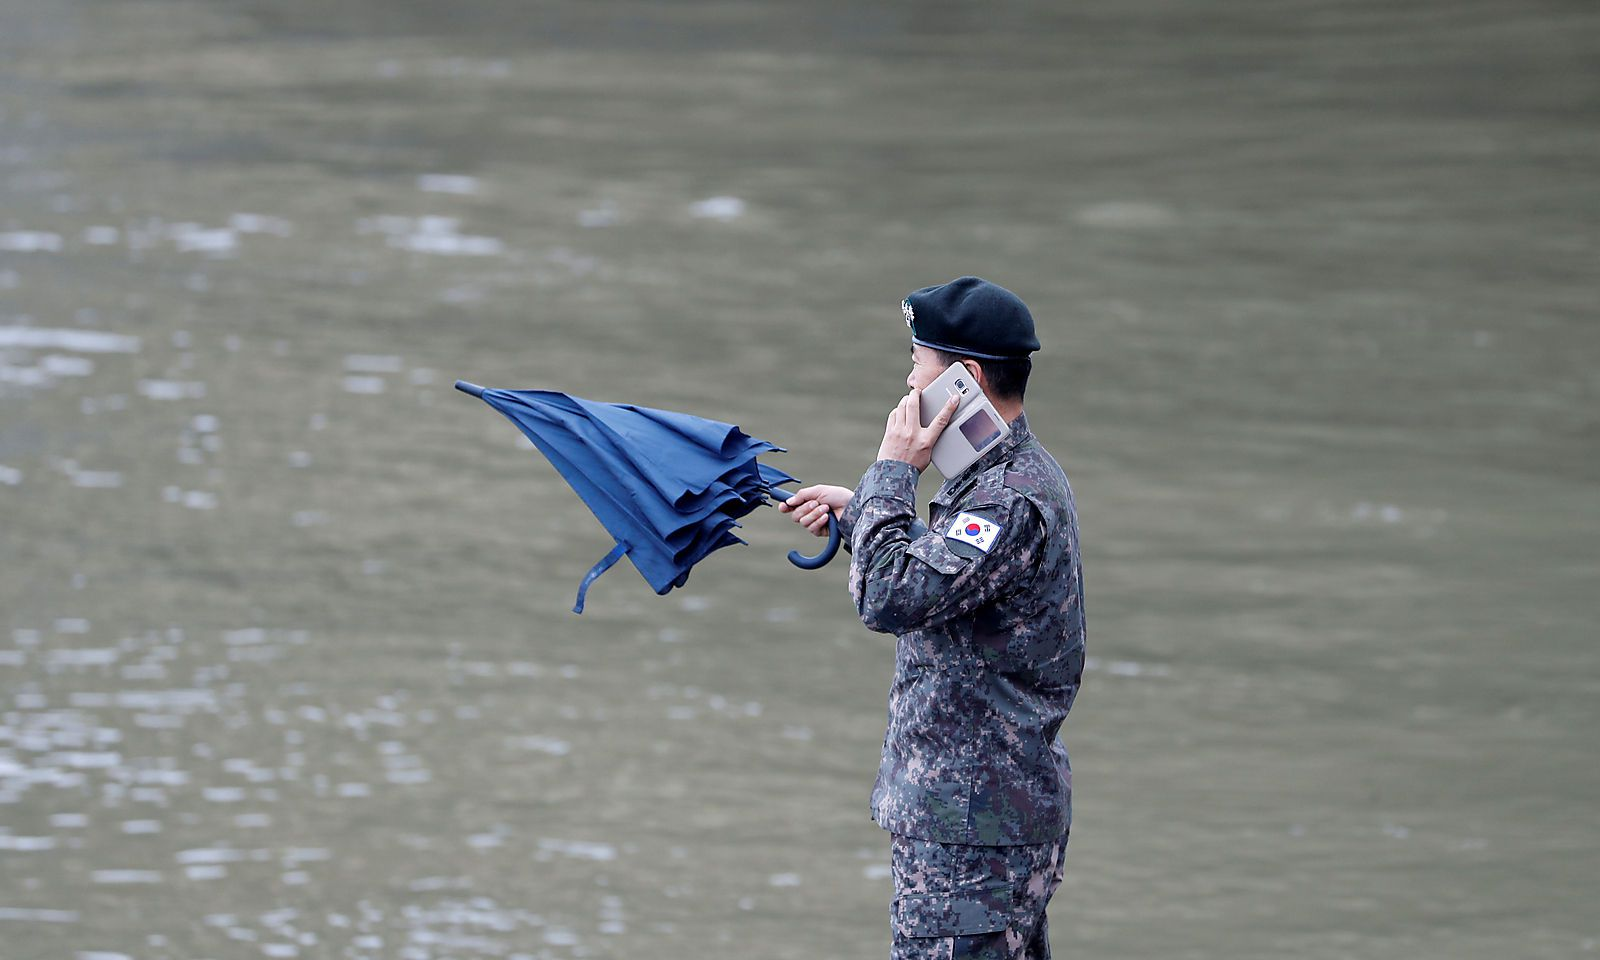 Military official from the South Korean Embassy is seen on his mobile phone at the Danube river bank in Budapest